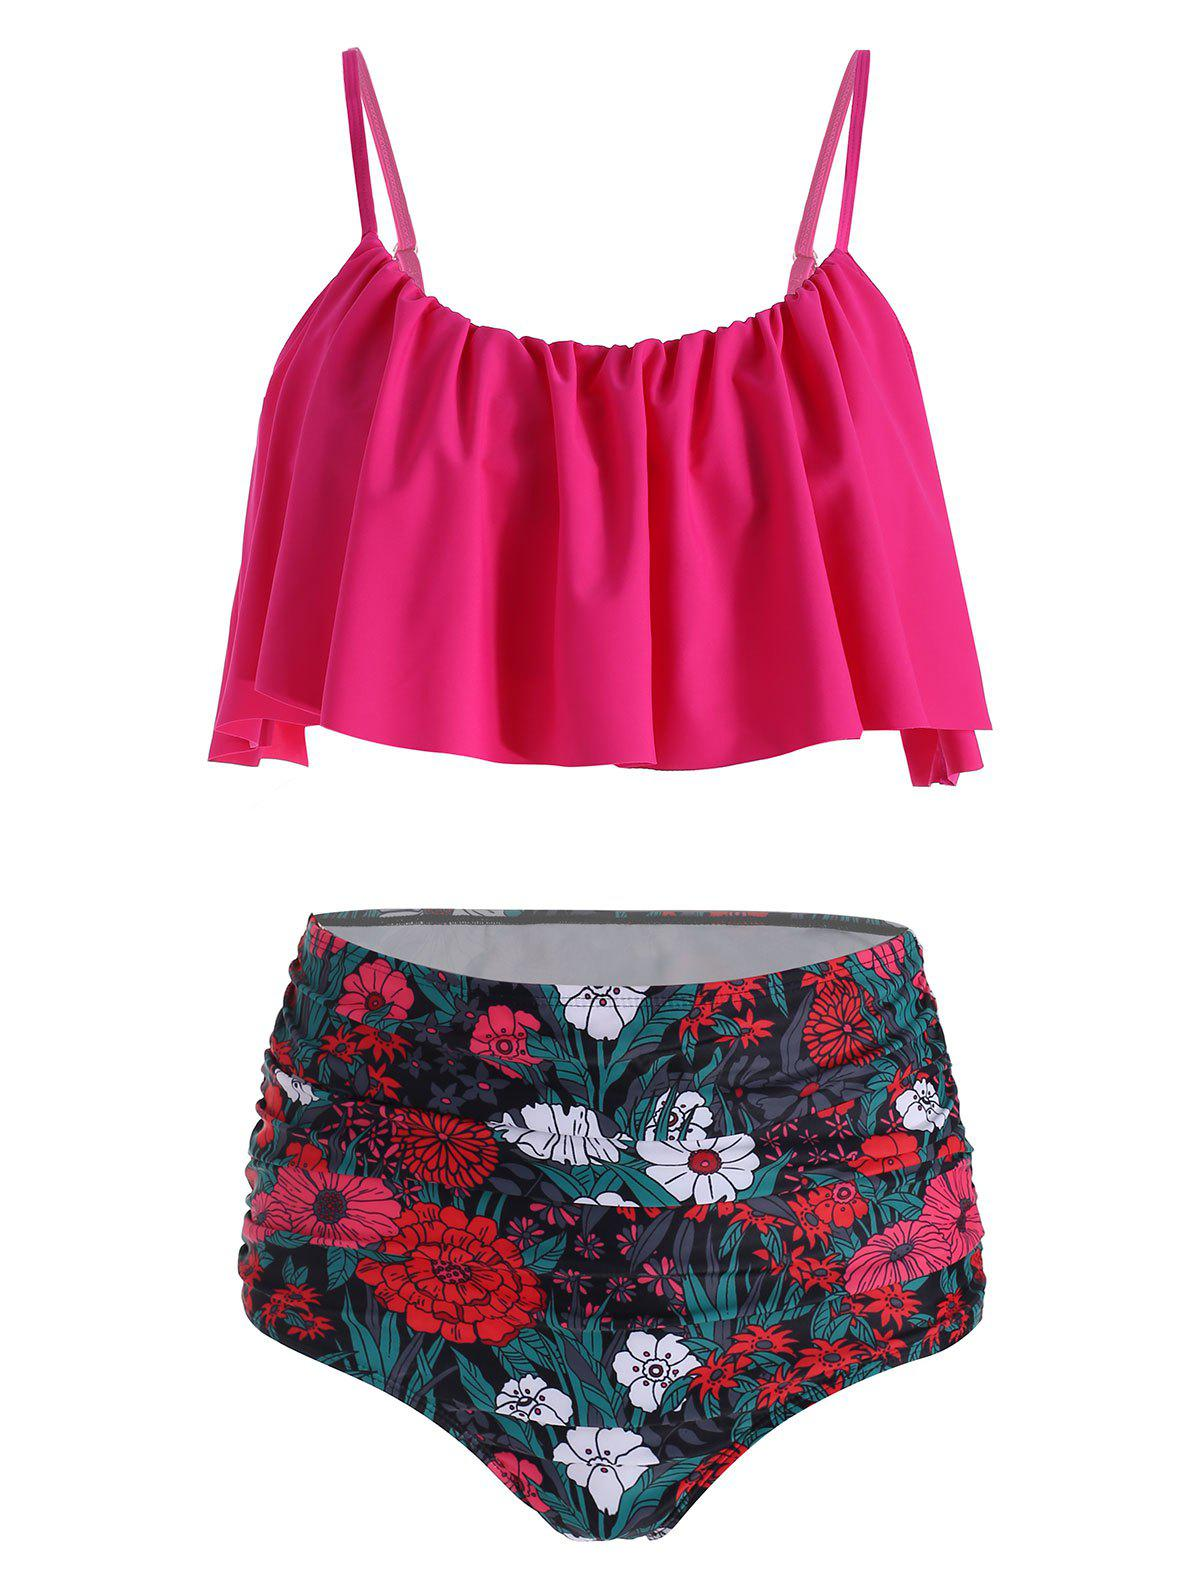 Floral Print Ruched Overlay Bikini Swimwear - ROSE RED S